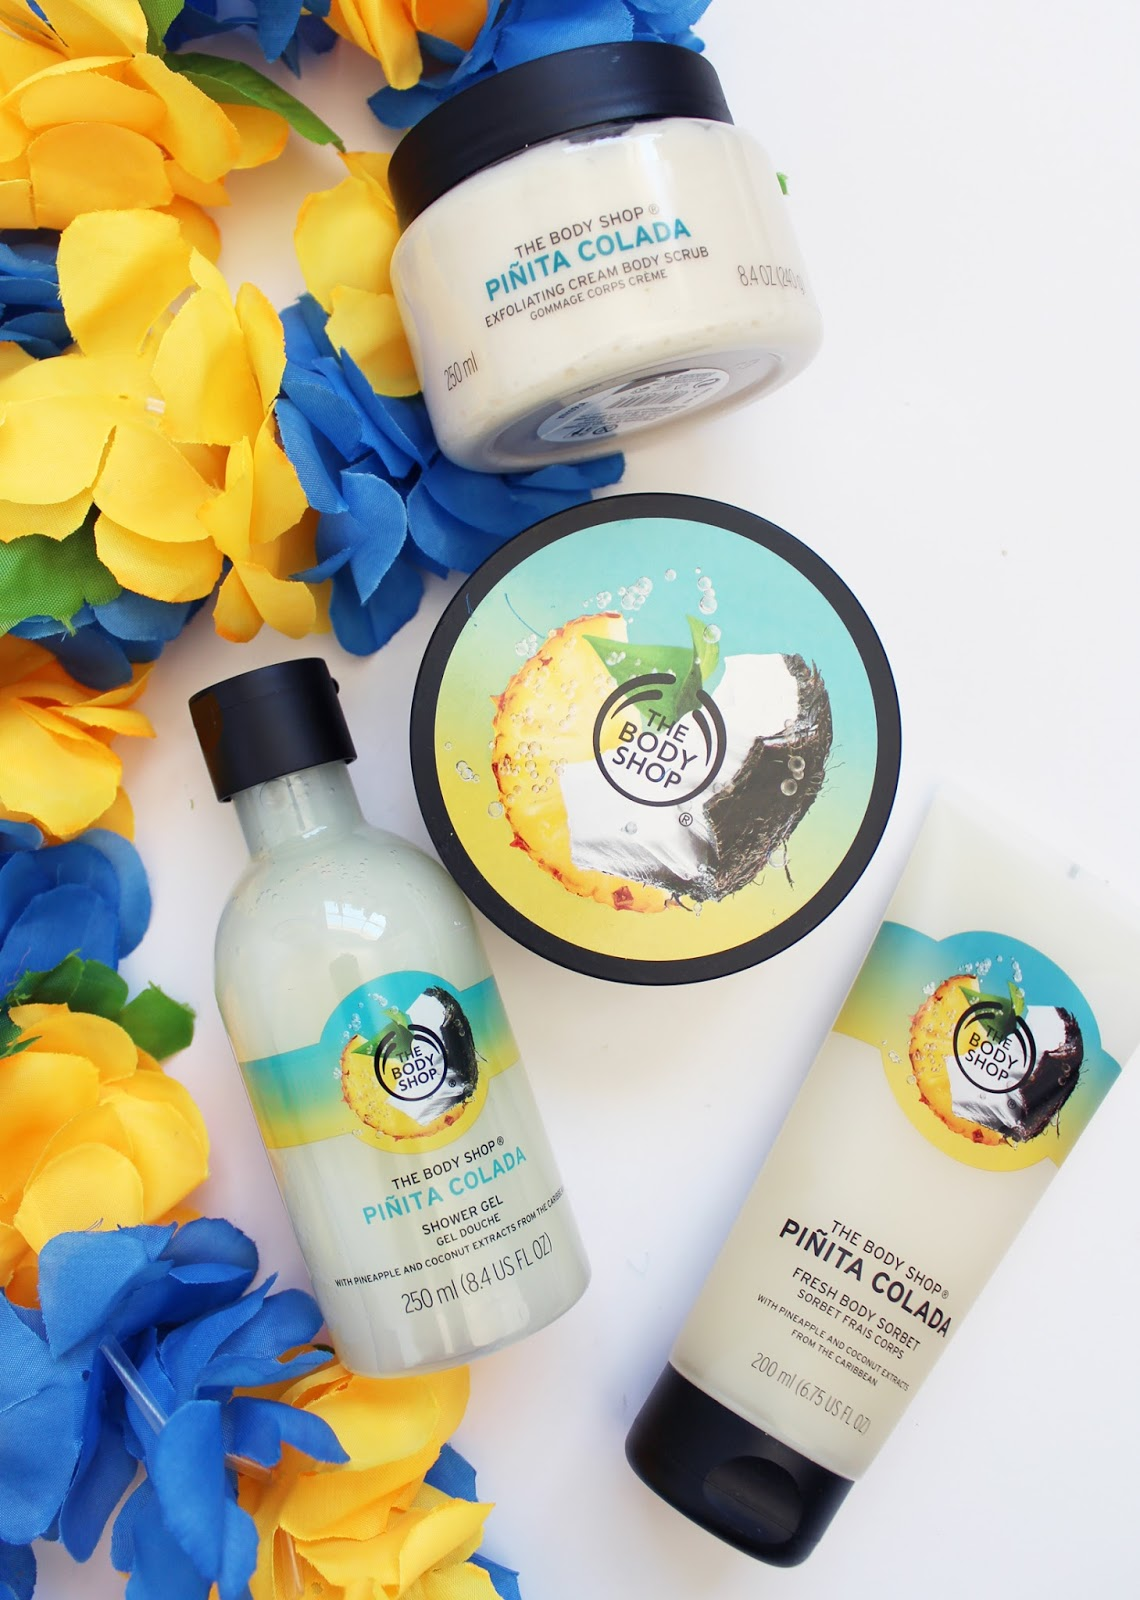 THE BODY SHOP | Pinita Colada Range for Summer '16 - CassandraMyee